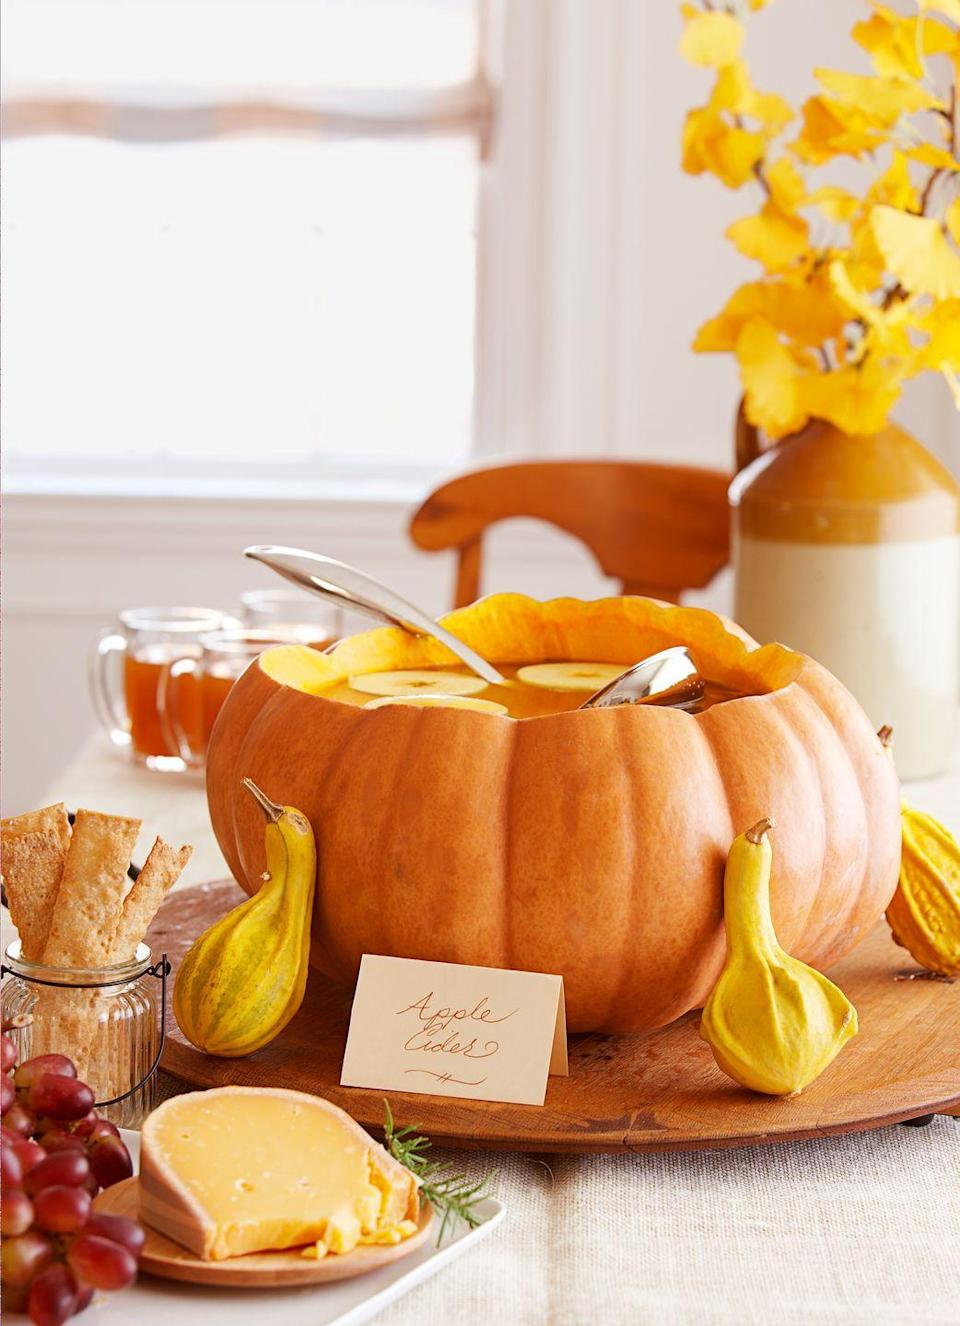 """<p>If you hollow out <a href=""""https://www.goodhousekeeping.com/holidays/halloween-ideas/g238/pumpkin-carving-ideas/"""" rel=""""nofollow noopener"""" target=""""_blank"""" data-ylk=""""slk:a pumpkin"""" class=""""link rapid-noclick-resp"""">a pumpkin</a> and use it as a punch bowl, you'll have one less dish to wash at the end of the night.</p>"""